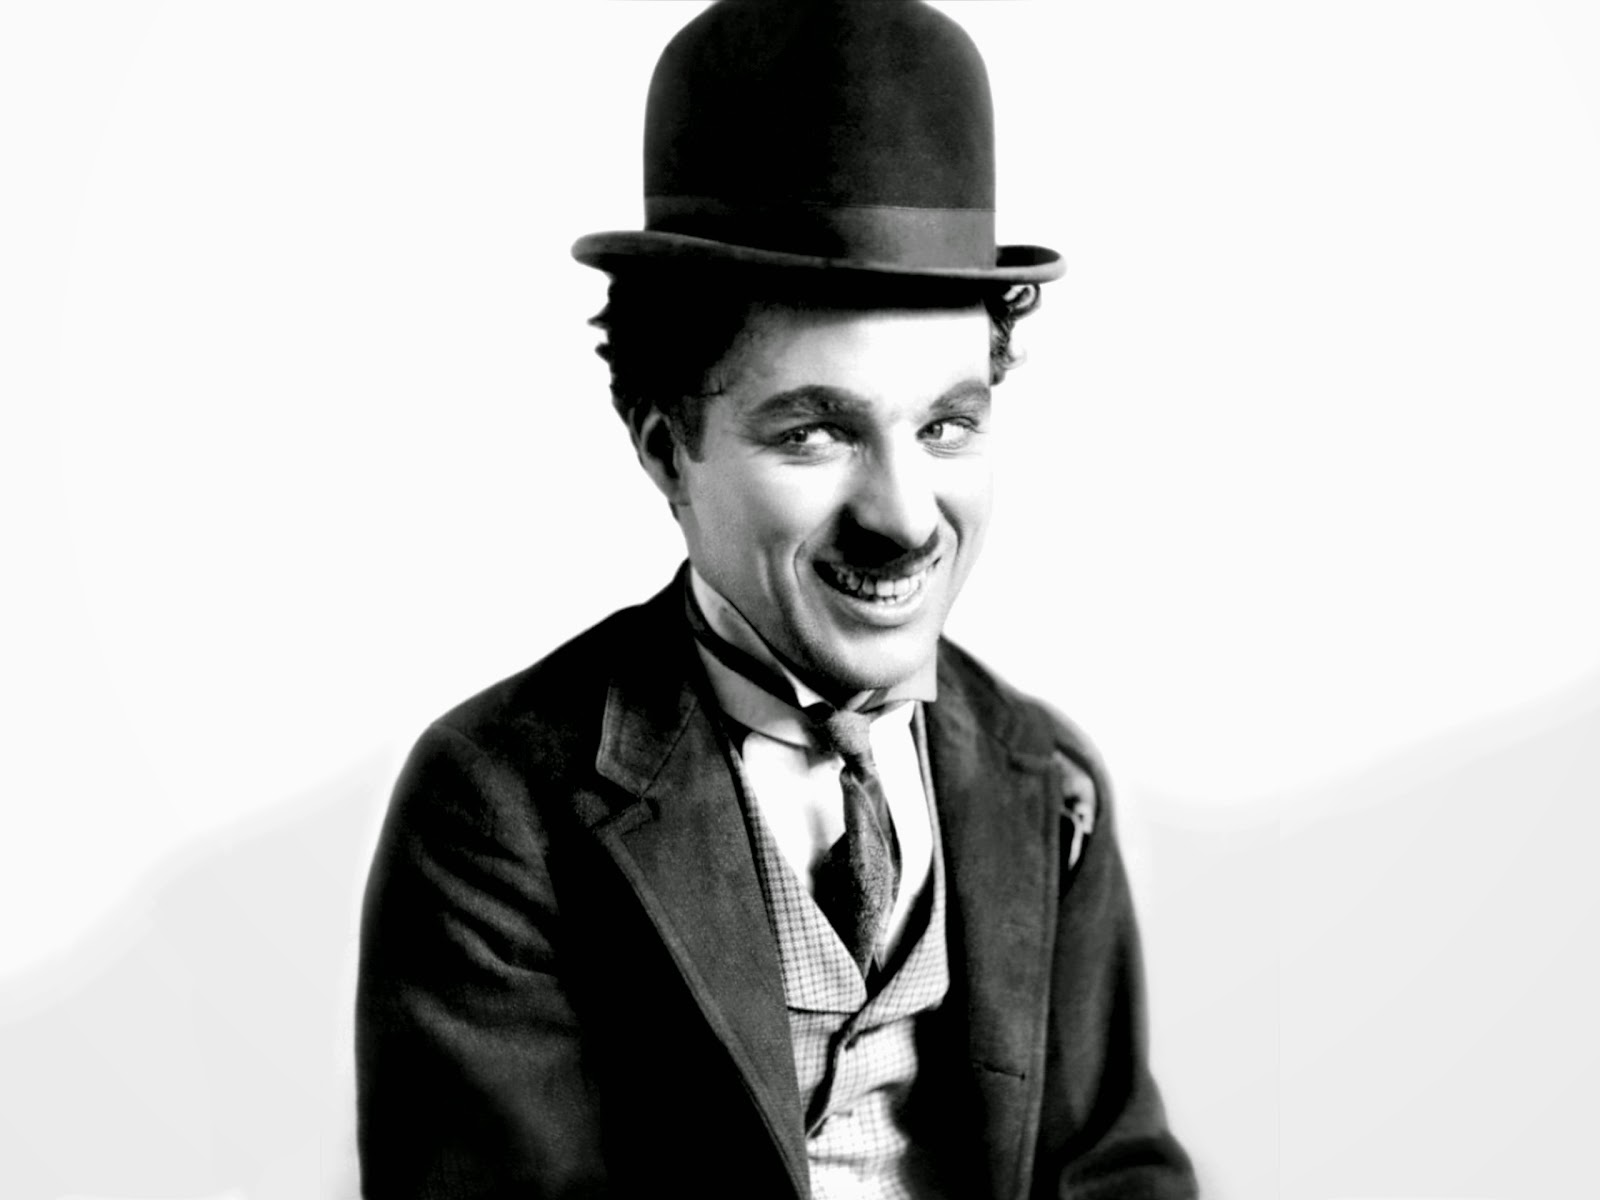 Help I have to write a essay on Charlie chaplin best answer gets 10 points!!!?